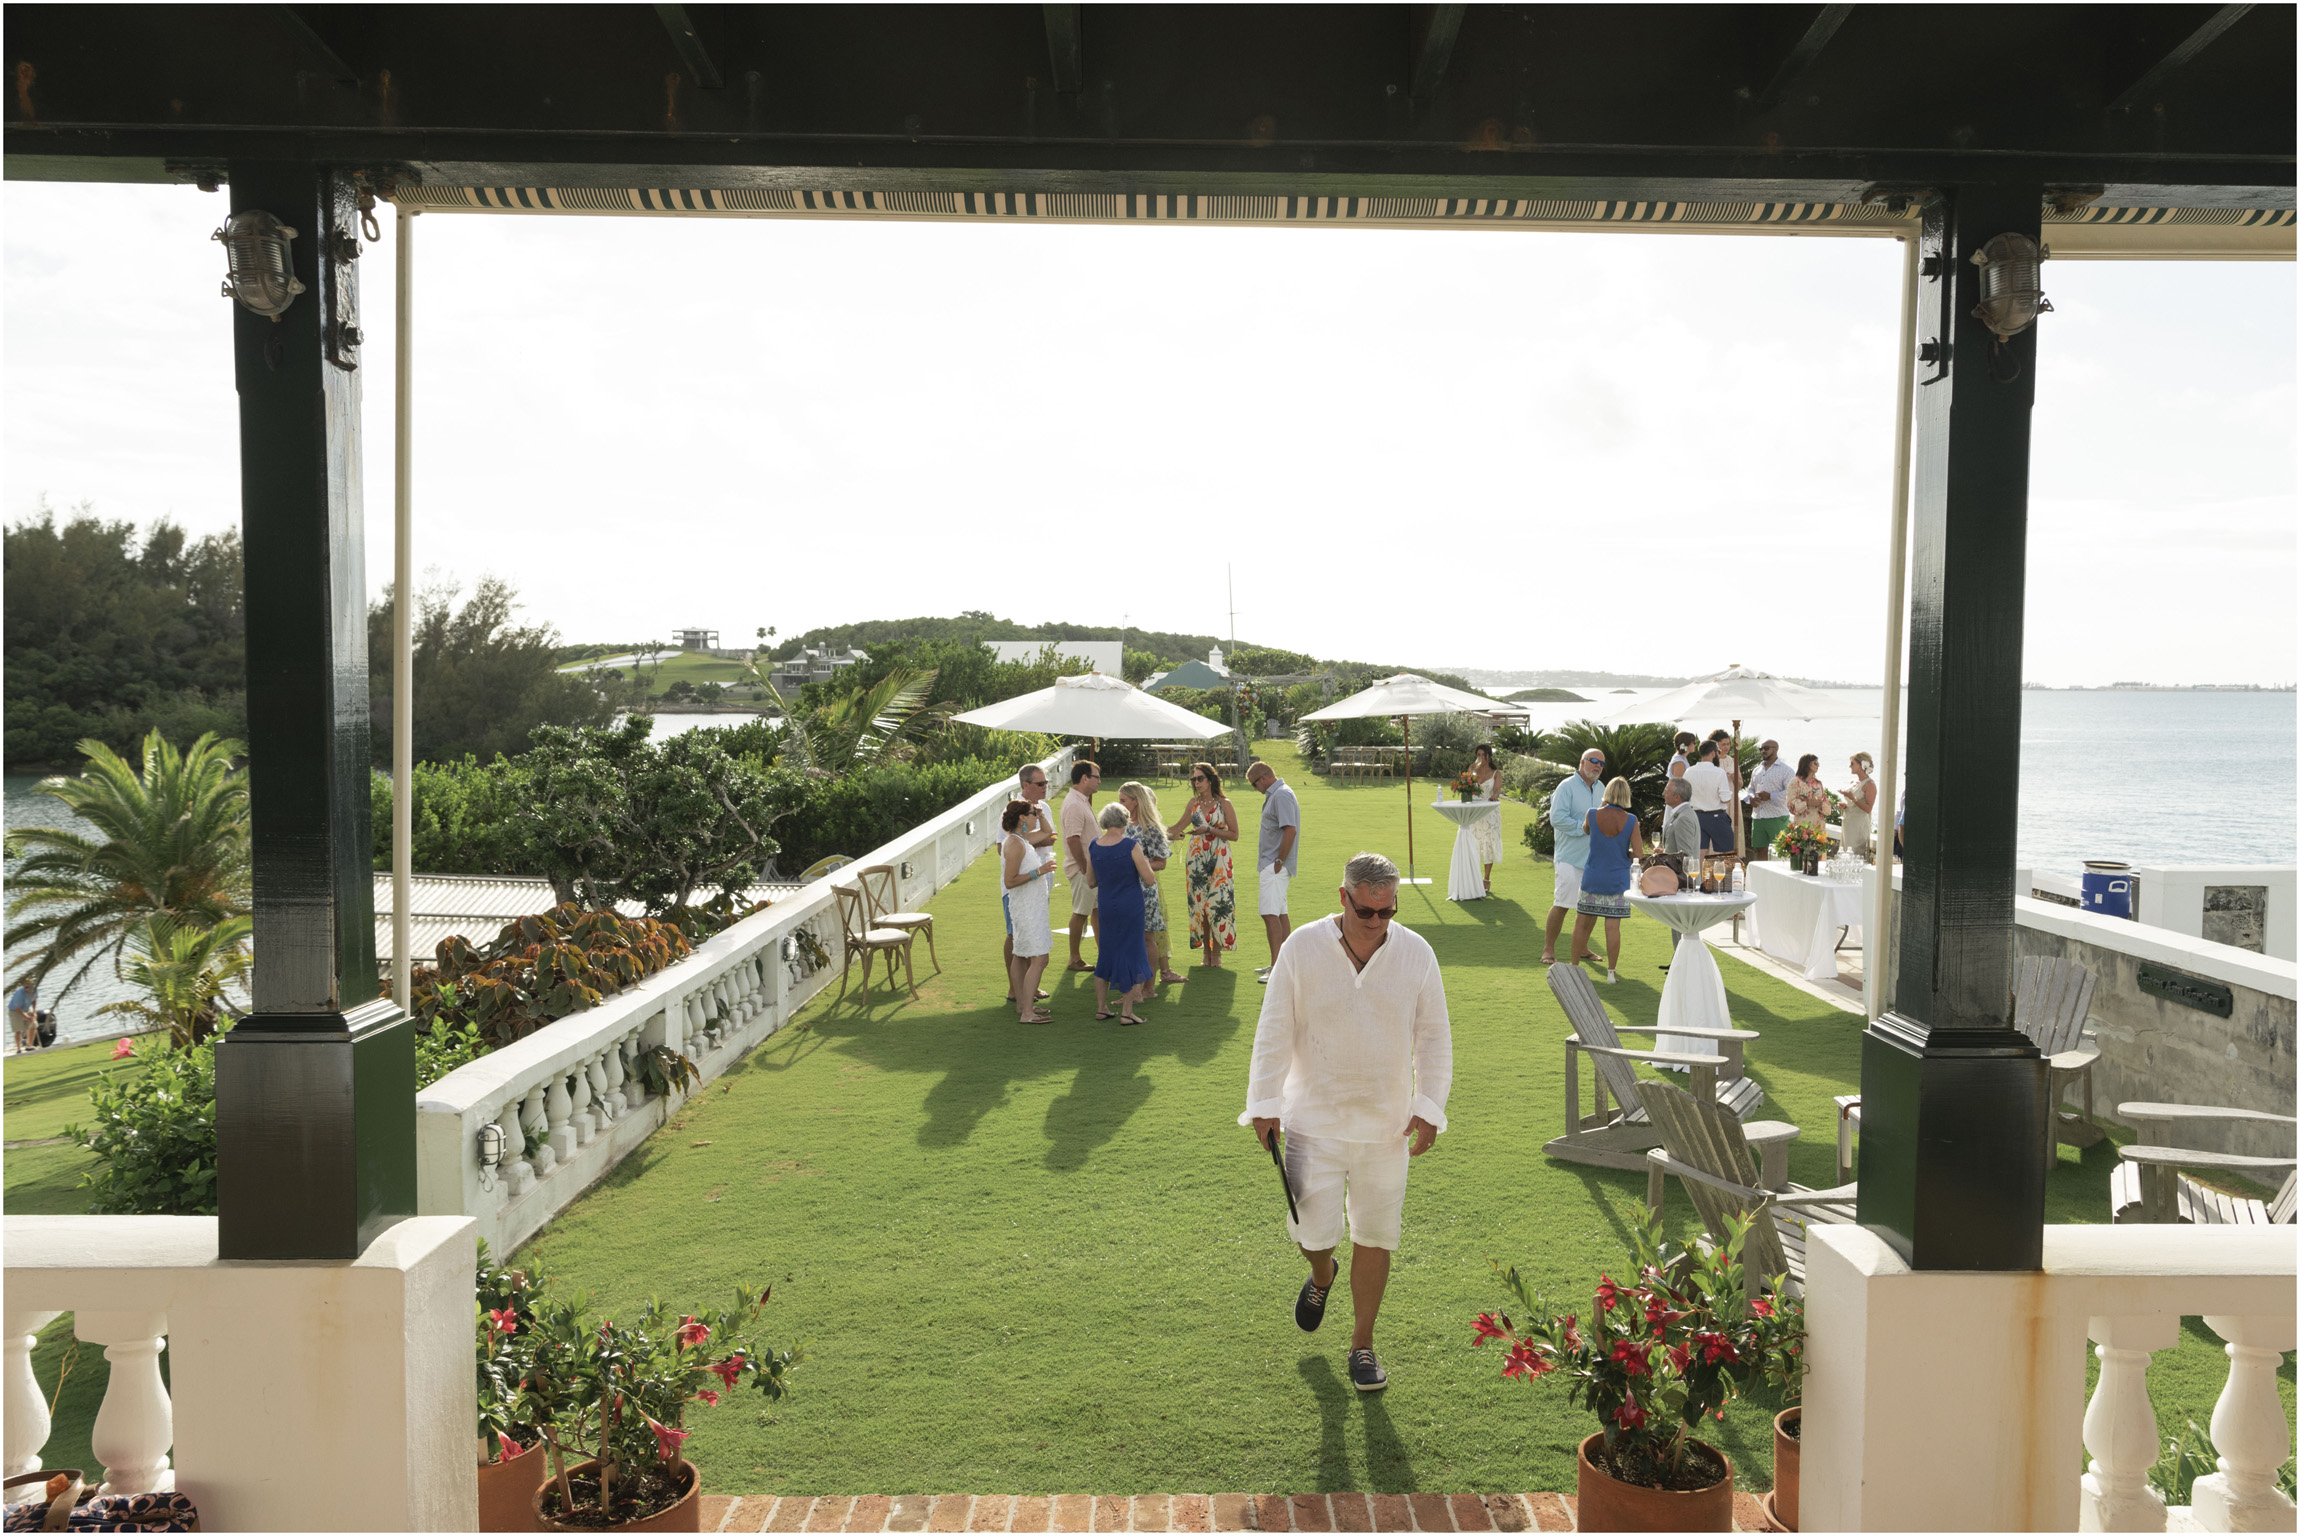 ©FianderFoto_Bermuda_Wedding_Photographer_Long_Island_Bermuda_Nancy_Ray_051.jpg